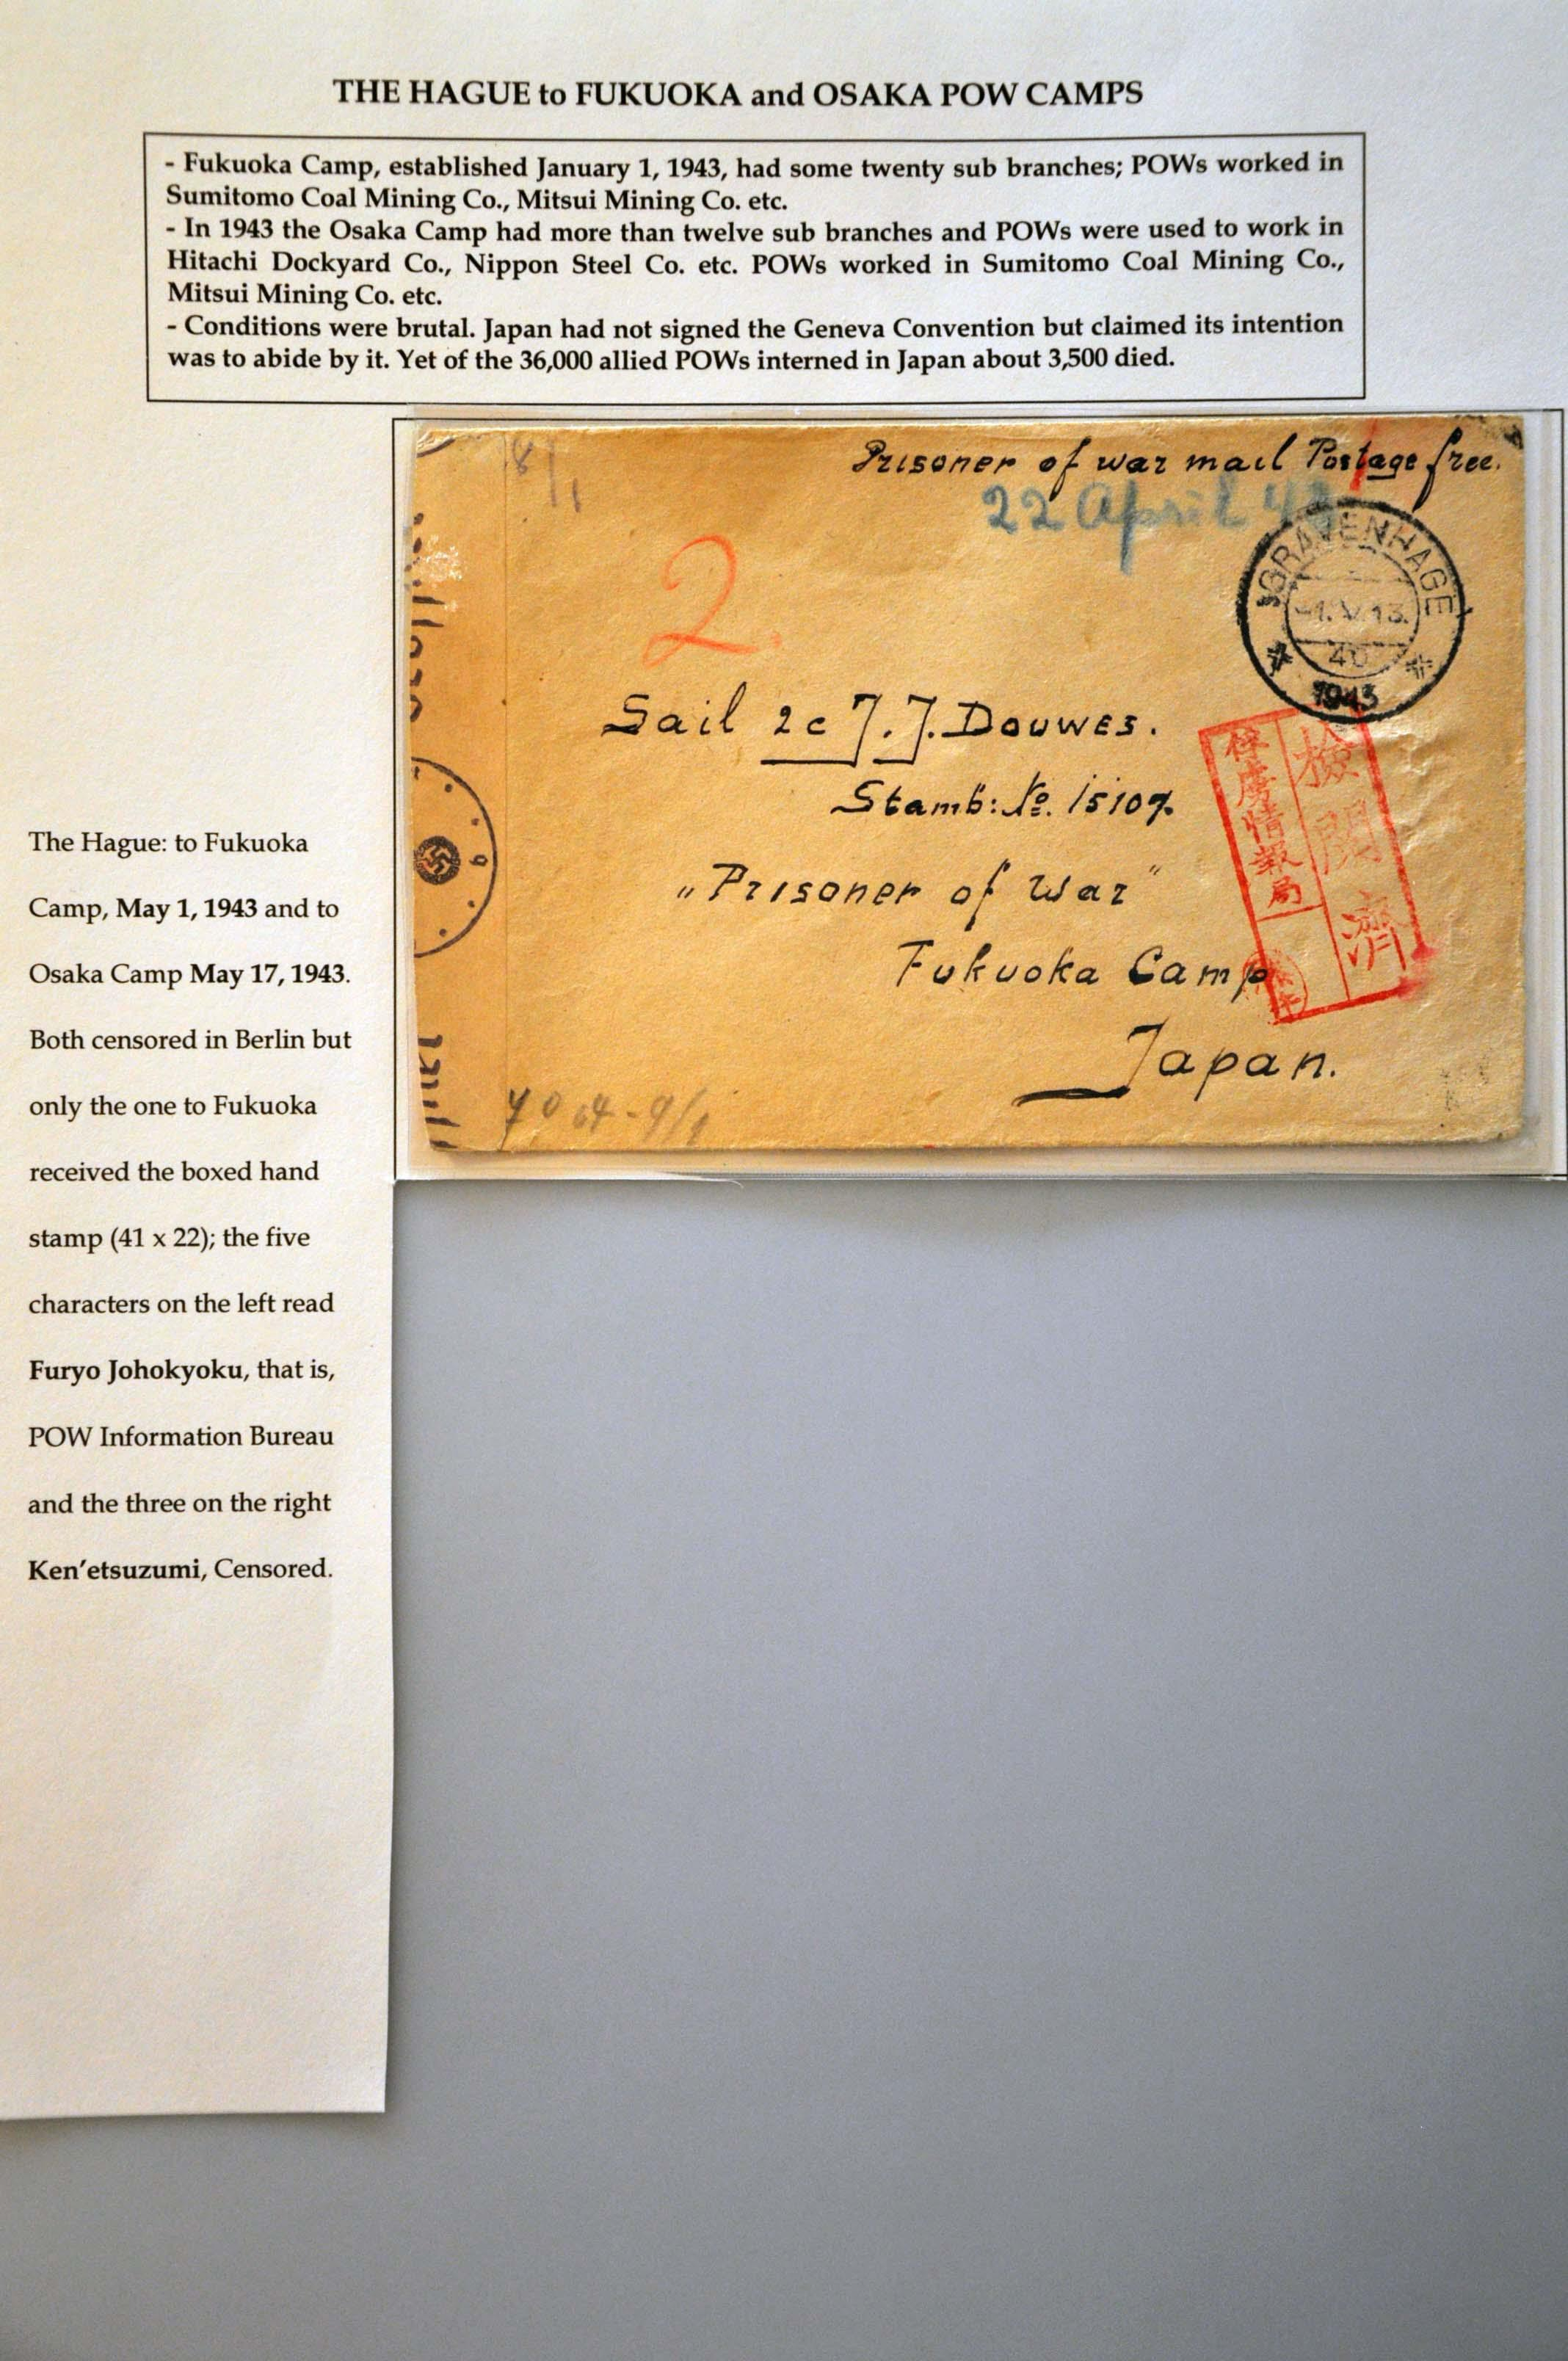 Lot 2803 - Netherlands and former colonies Netherlands -  Corinphila Veilingen Auction 244 -Netherlands and former colonies, WW2 Postal History, Bosnia, German and British colonies, Egypt. - Day 3